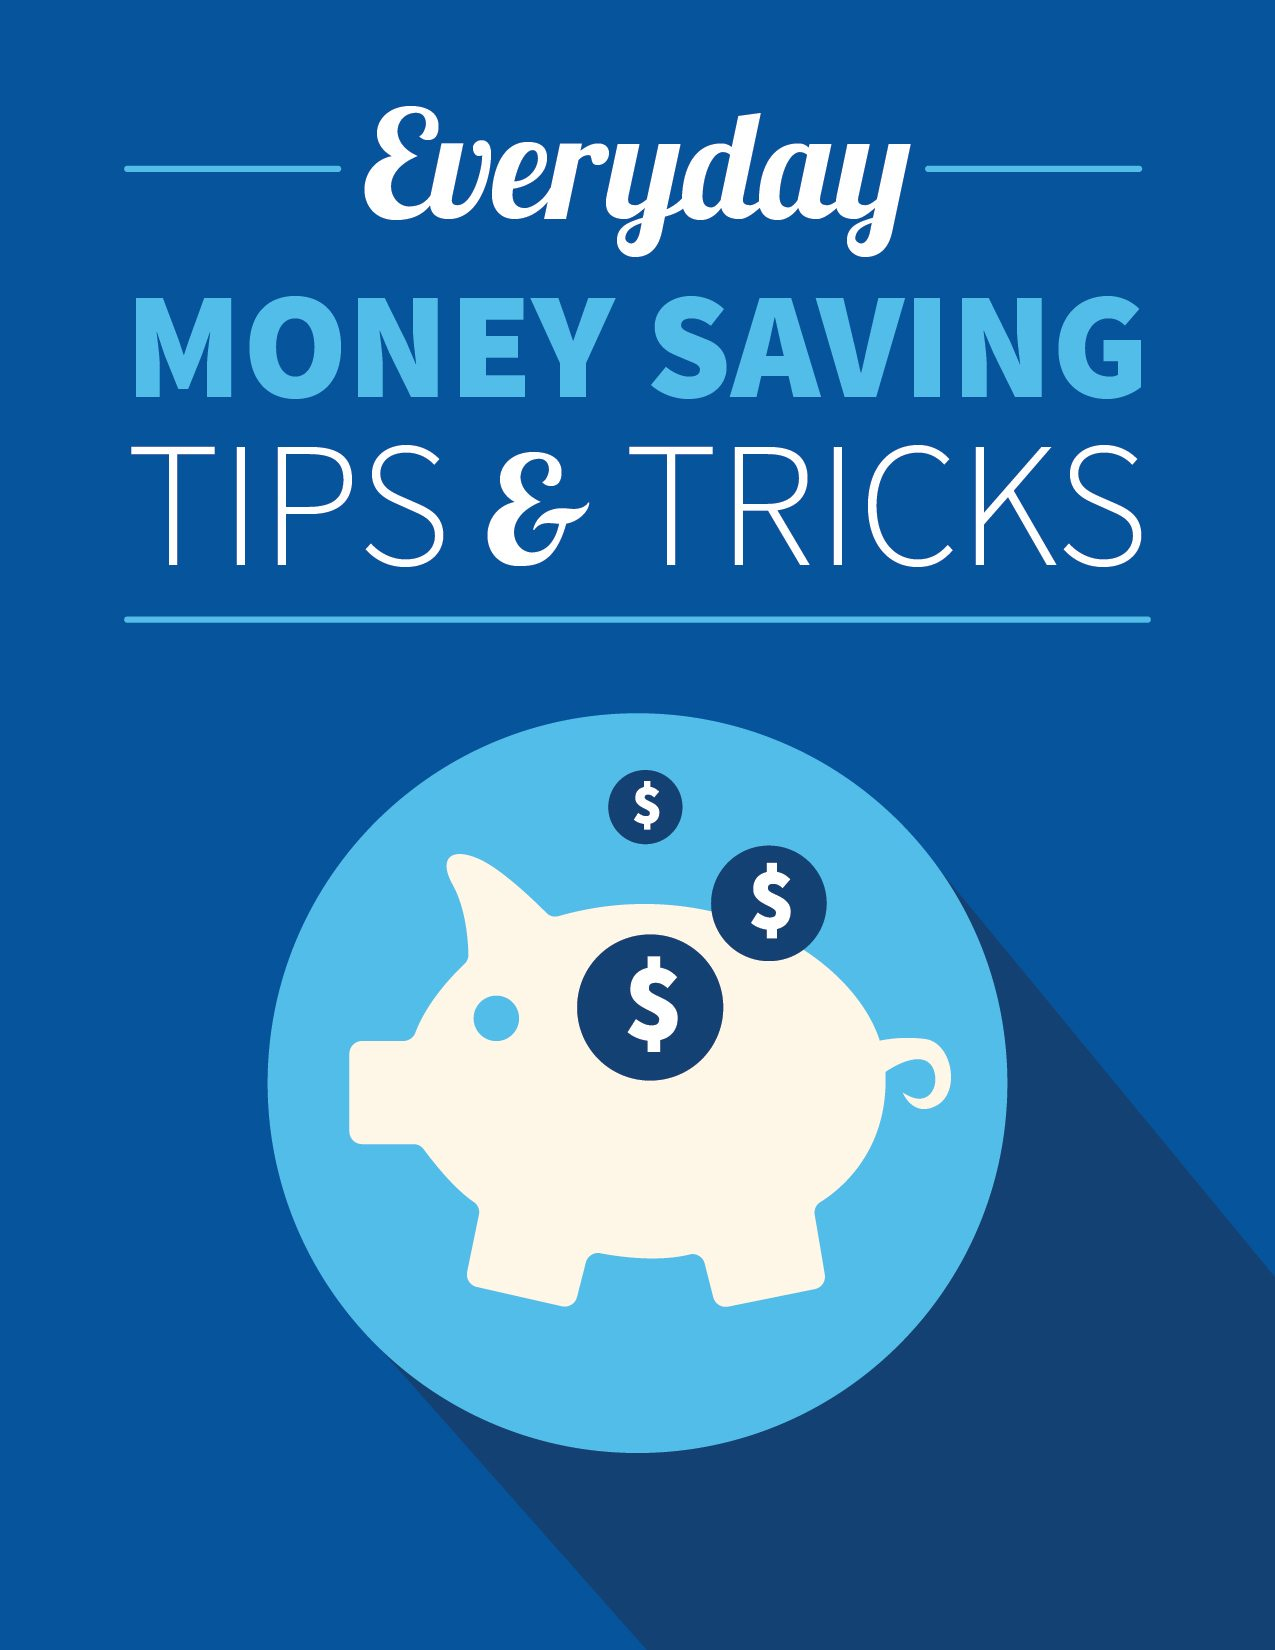 Everyday Money Saving Tips and Tricks